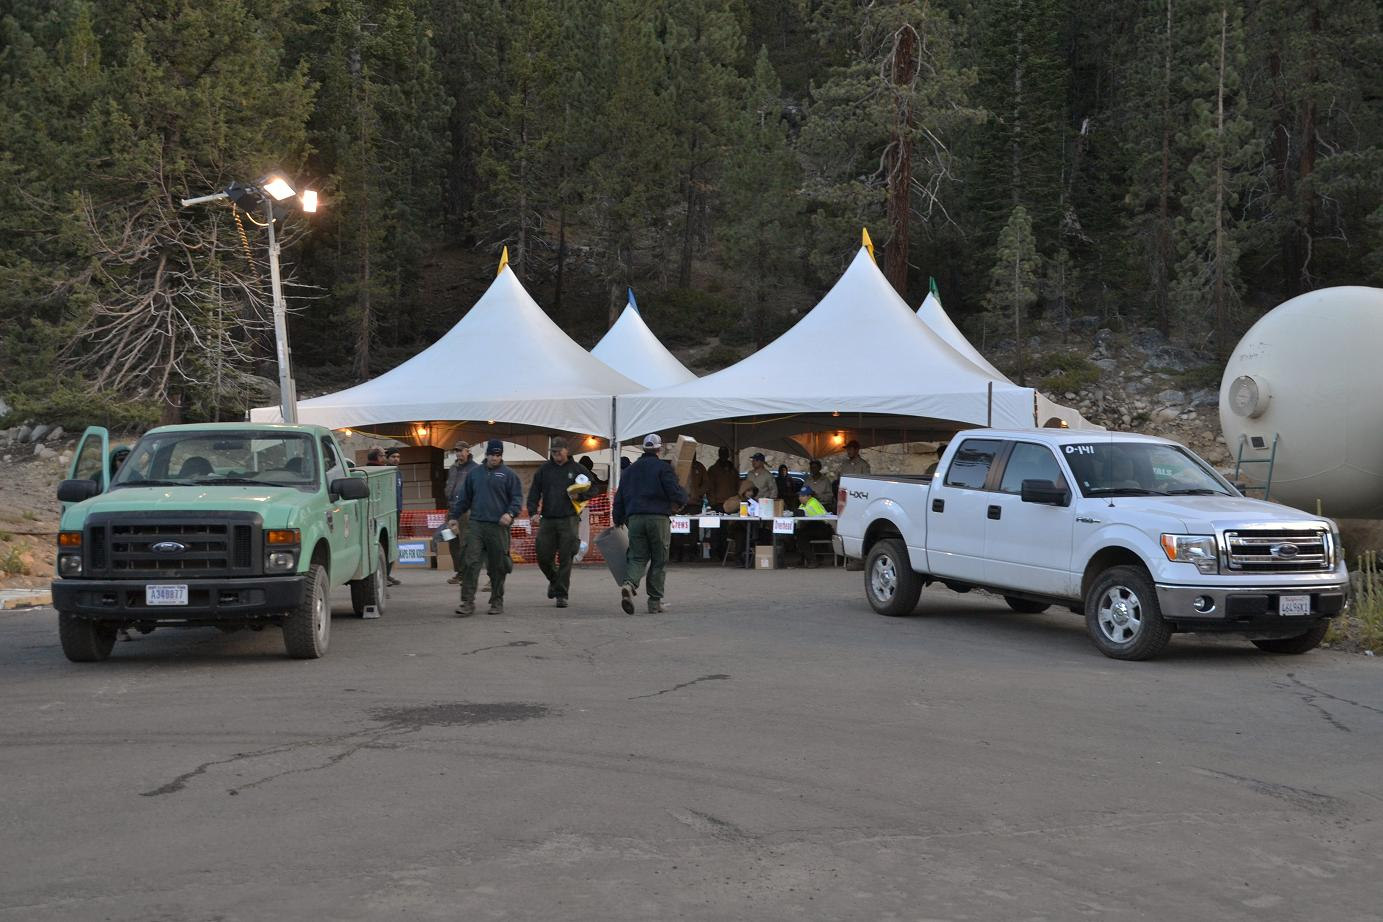 Supply tent at Aspen Fire